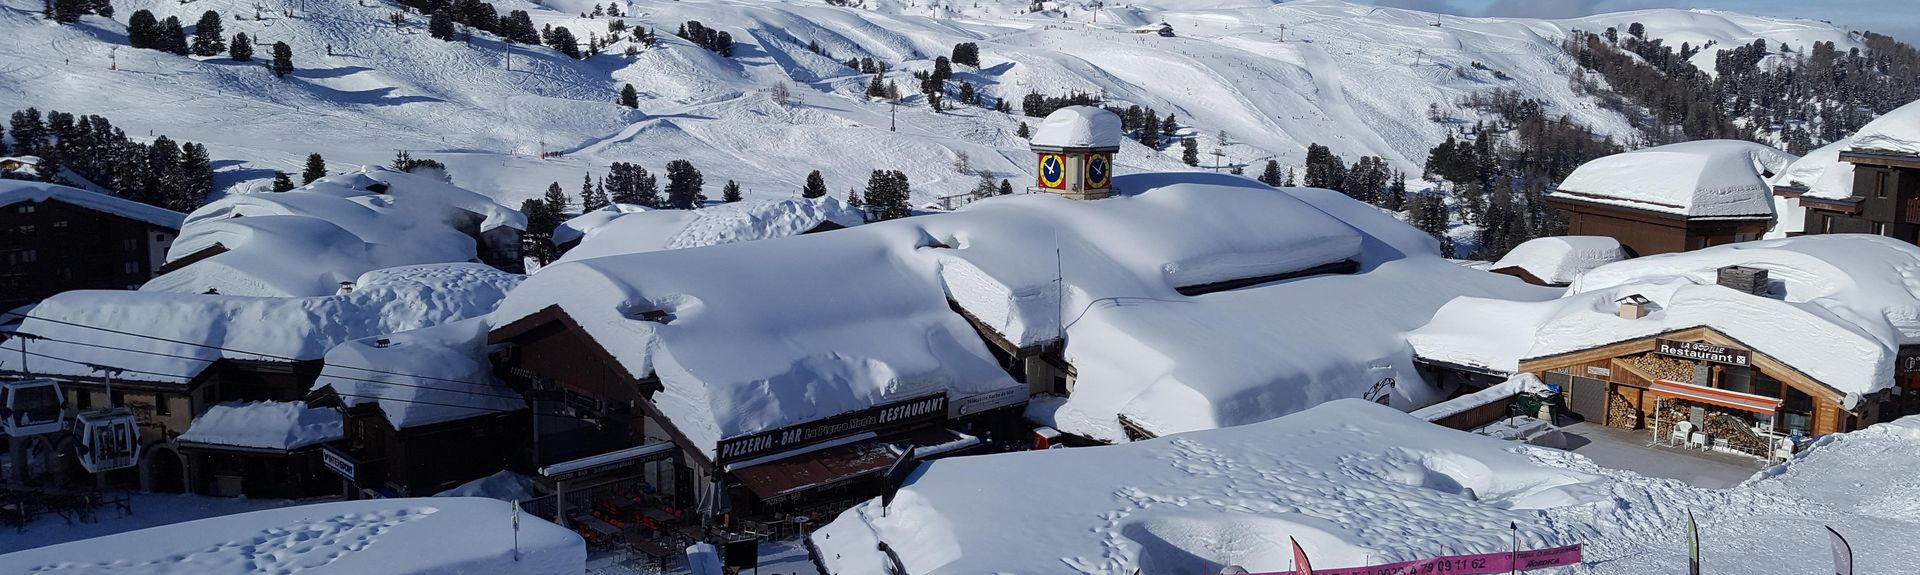 Meribel Village, Les Allues, Savoie (department), France